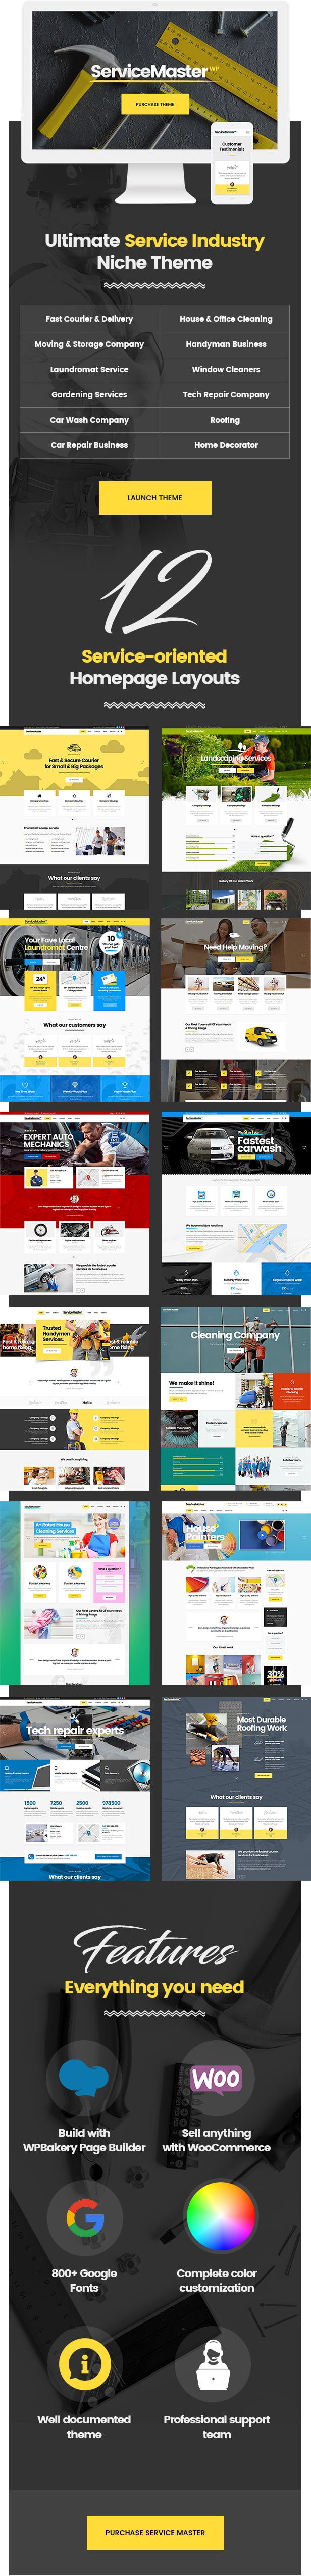 Service Master - Handyman Business Theme - 1